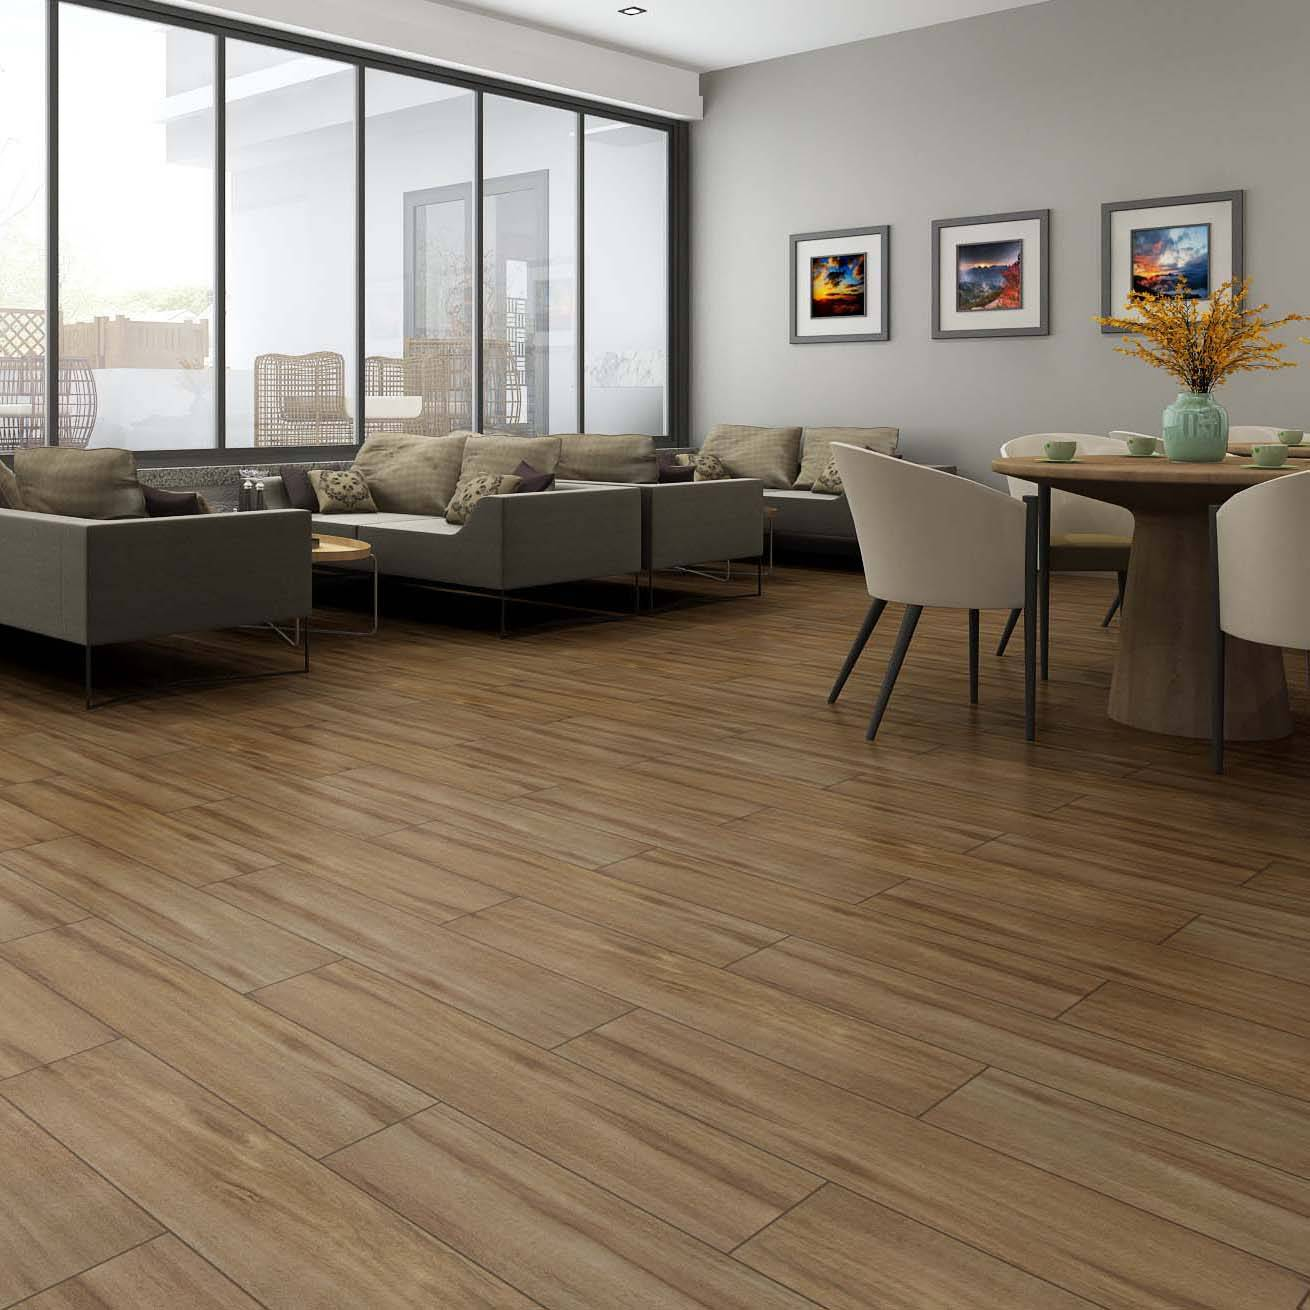 20x90CM Building Material Wood Effect Floor Tiles Moisture – Proof Featured Image